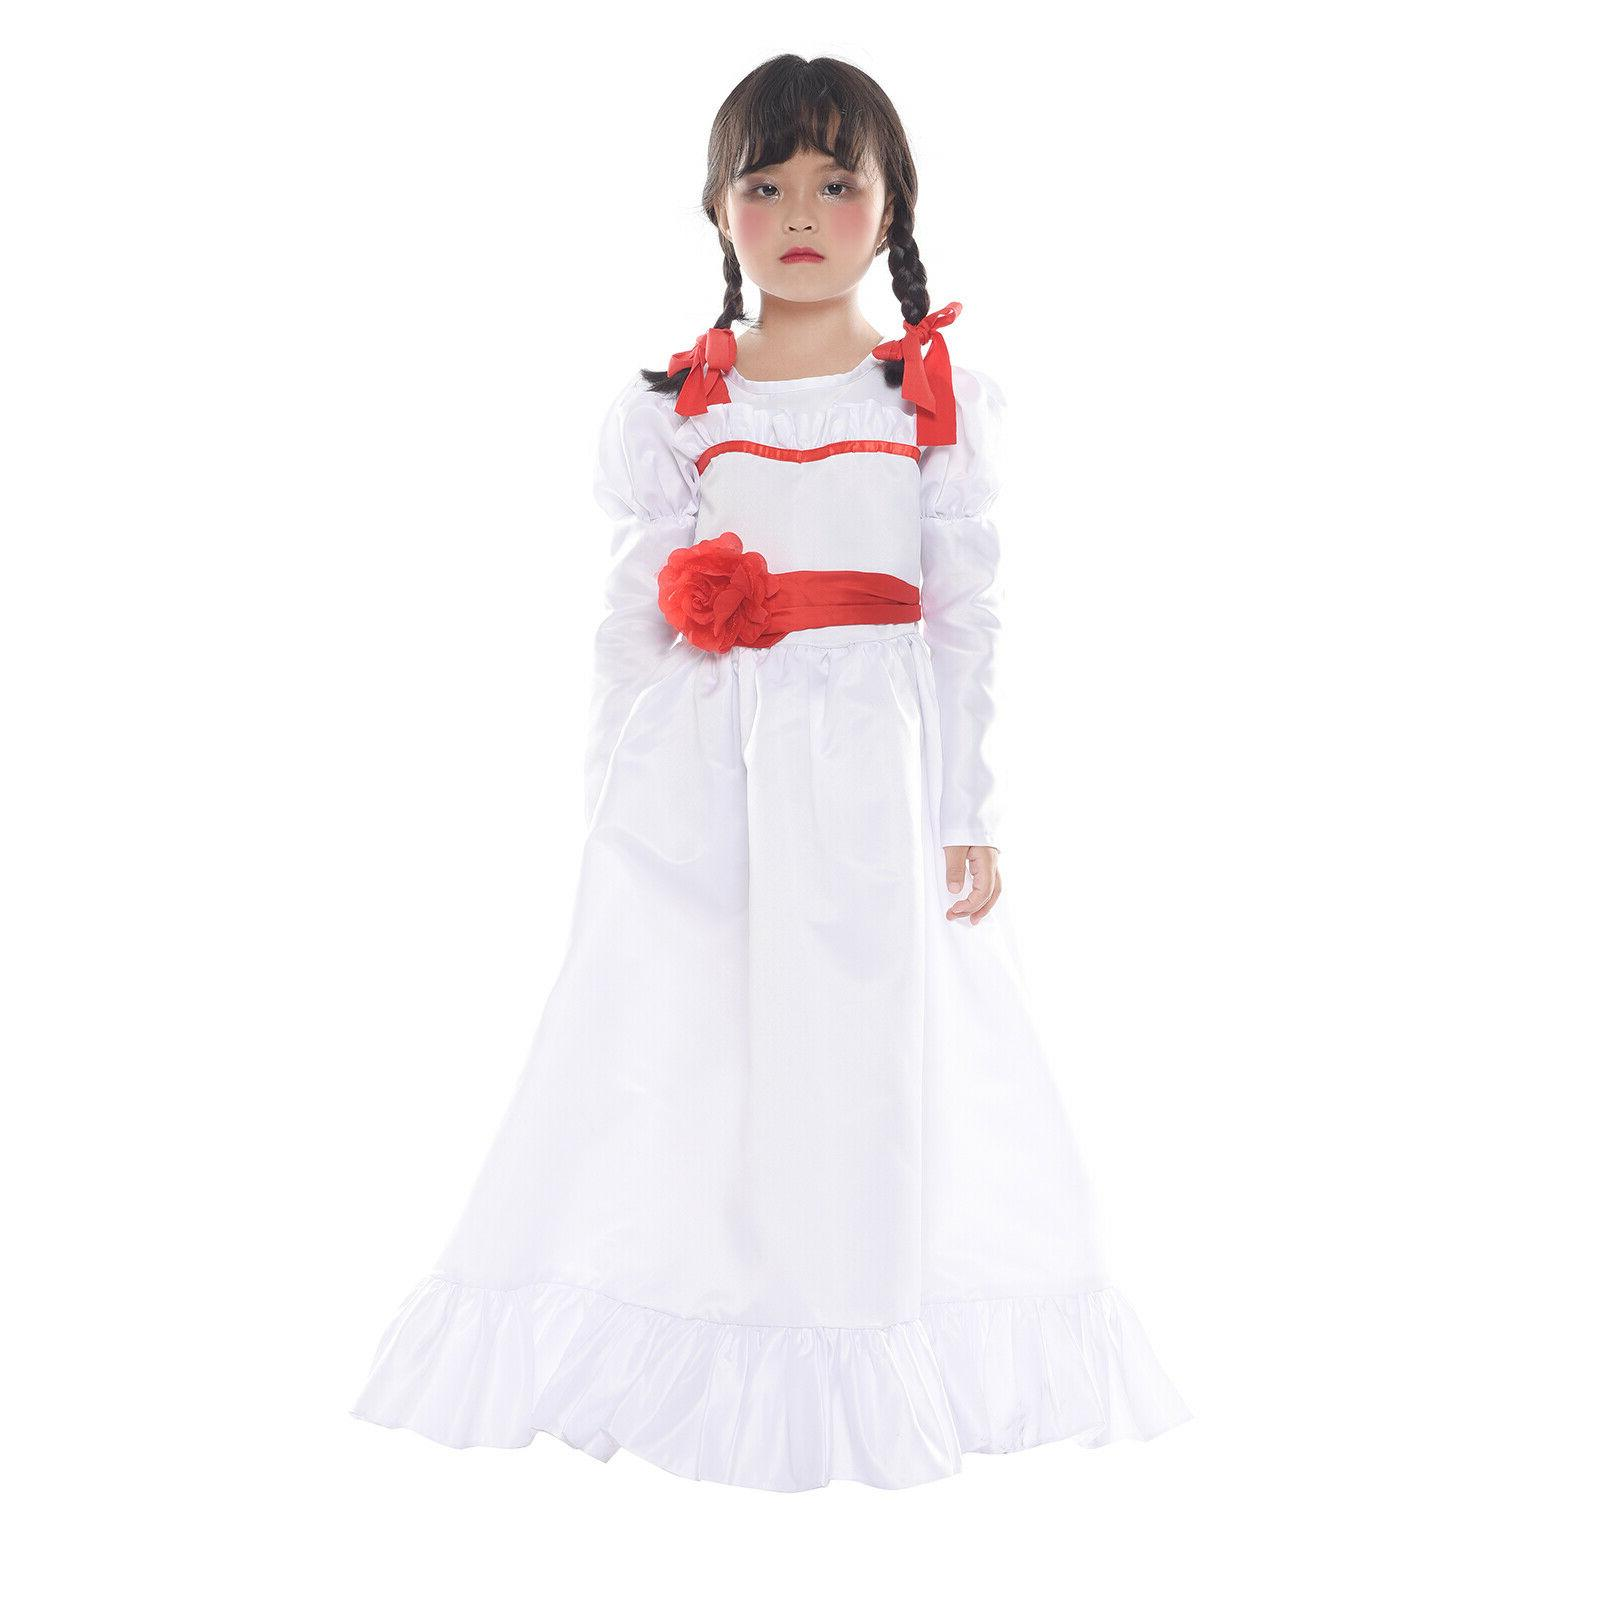 The Annabelle Costume Adult Long White Dress